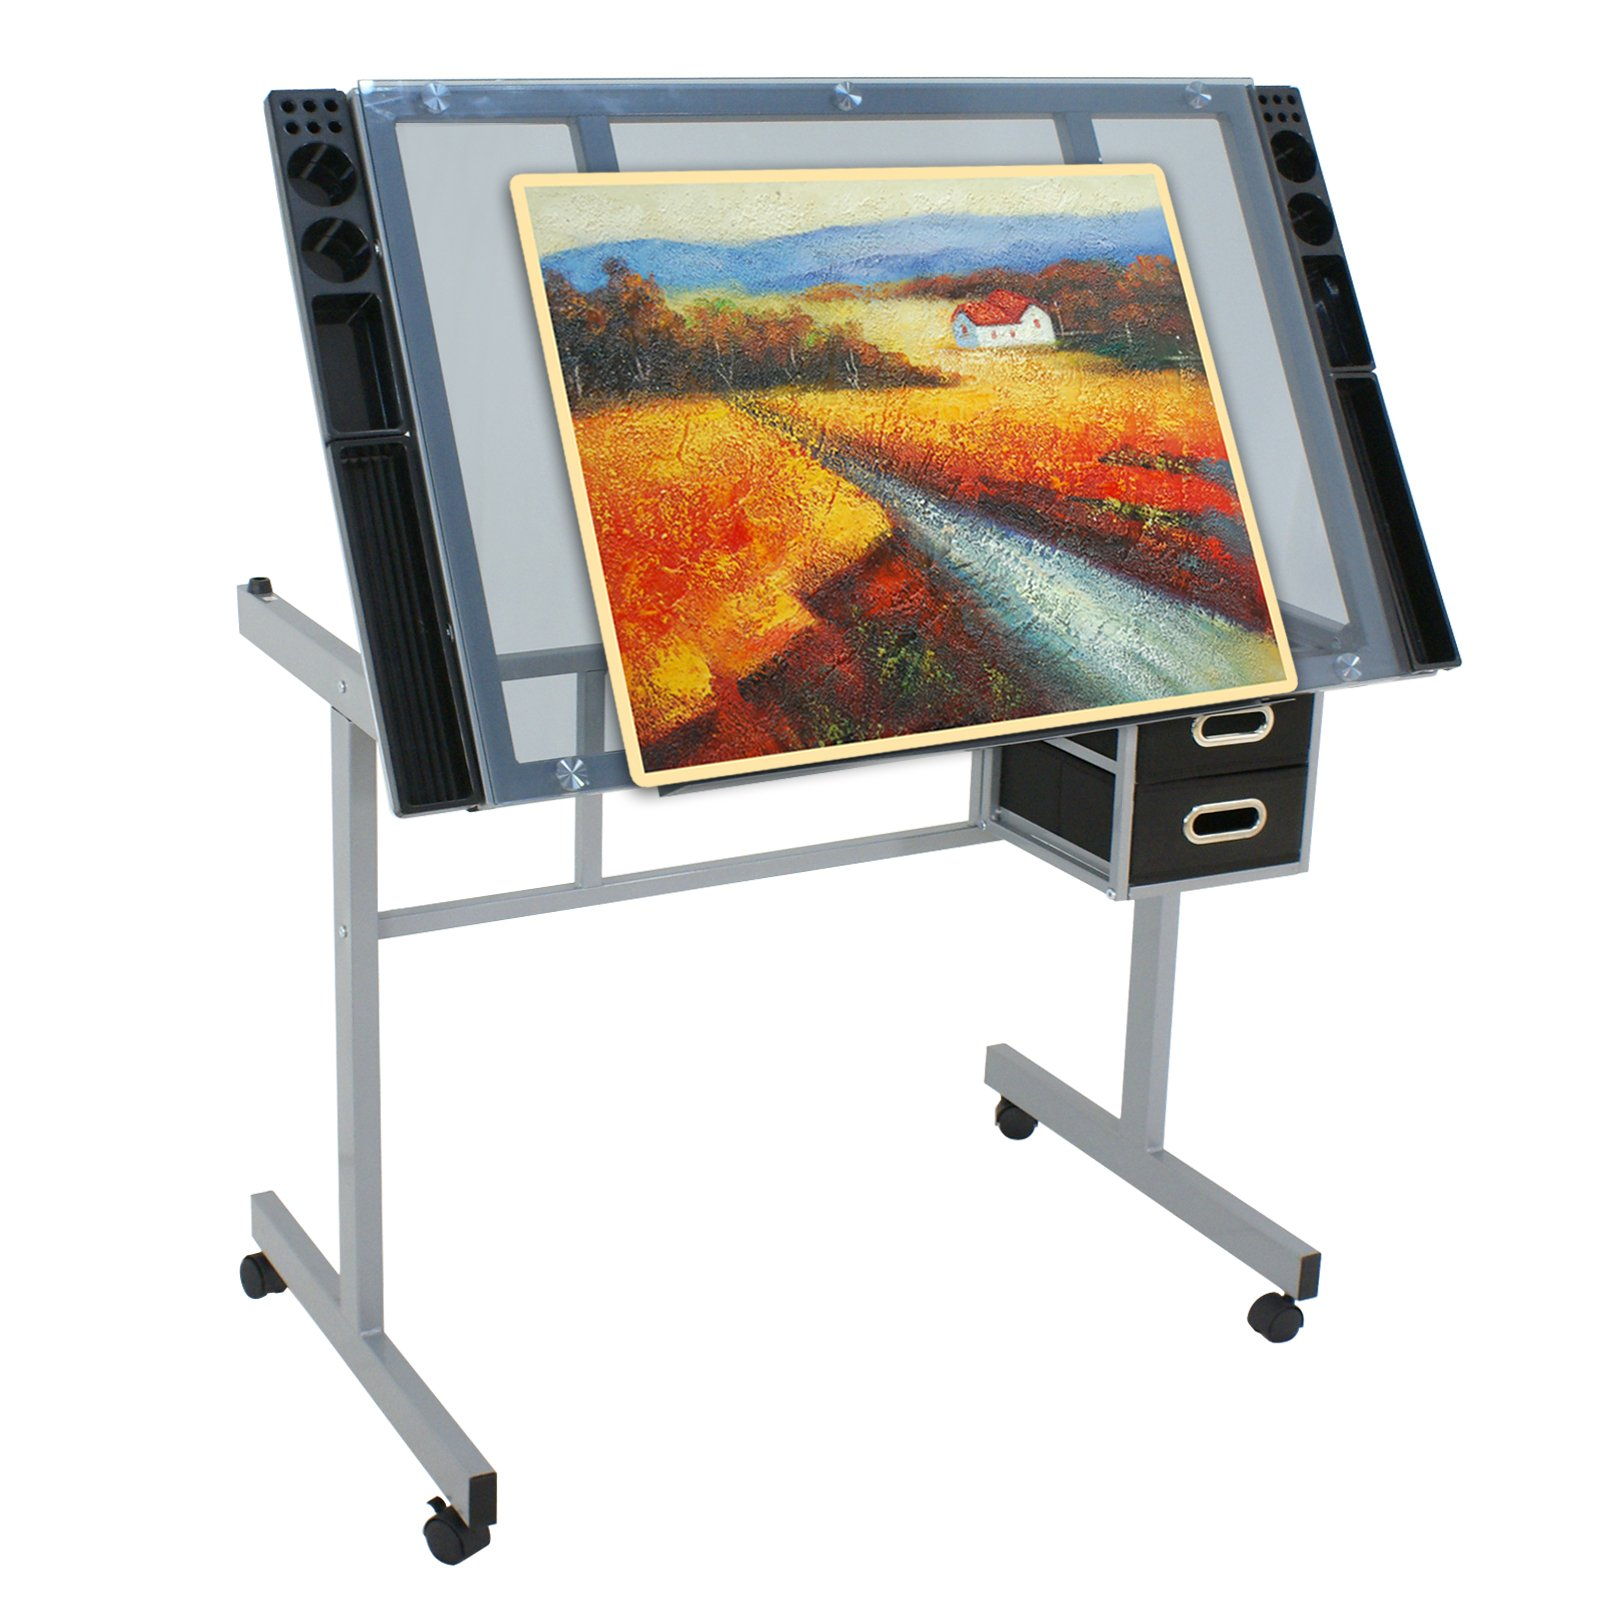 F2C Rolling Drawing Desk Craft Station Art Craft Hobby Drafting Table Desk Glass Top with Drawers by F2C